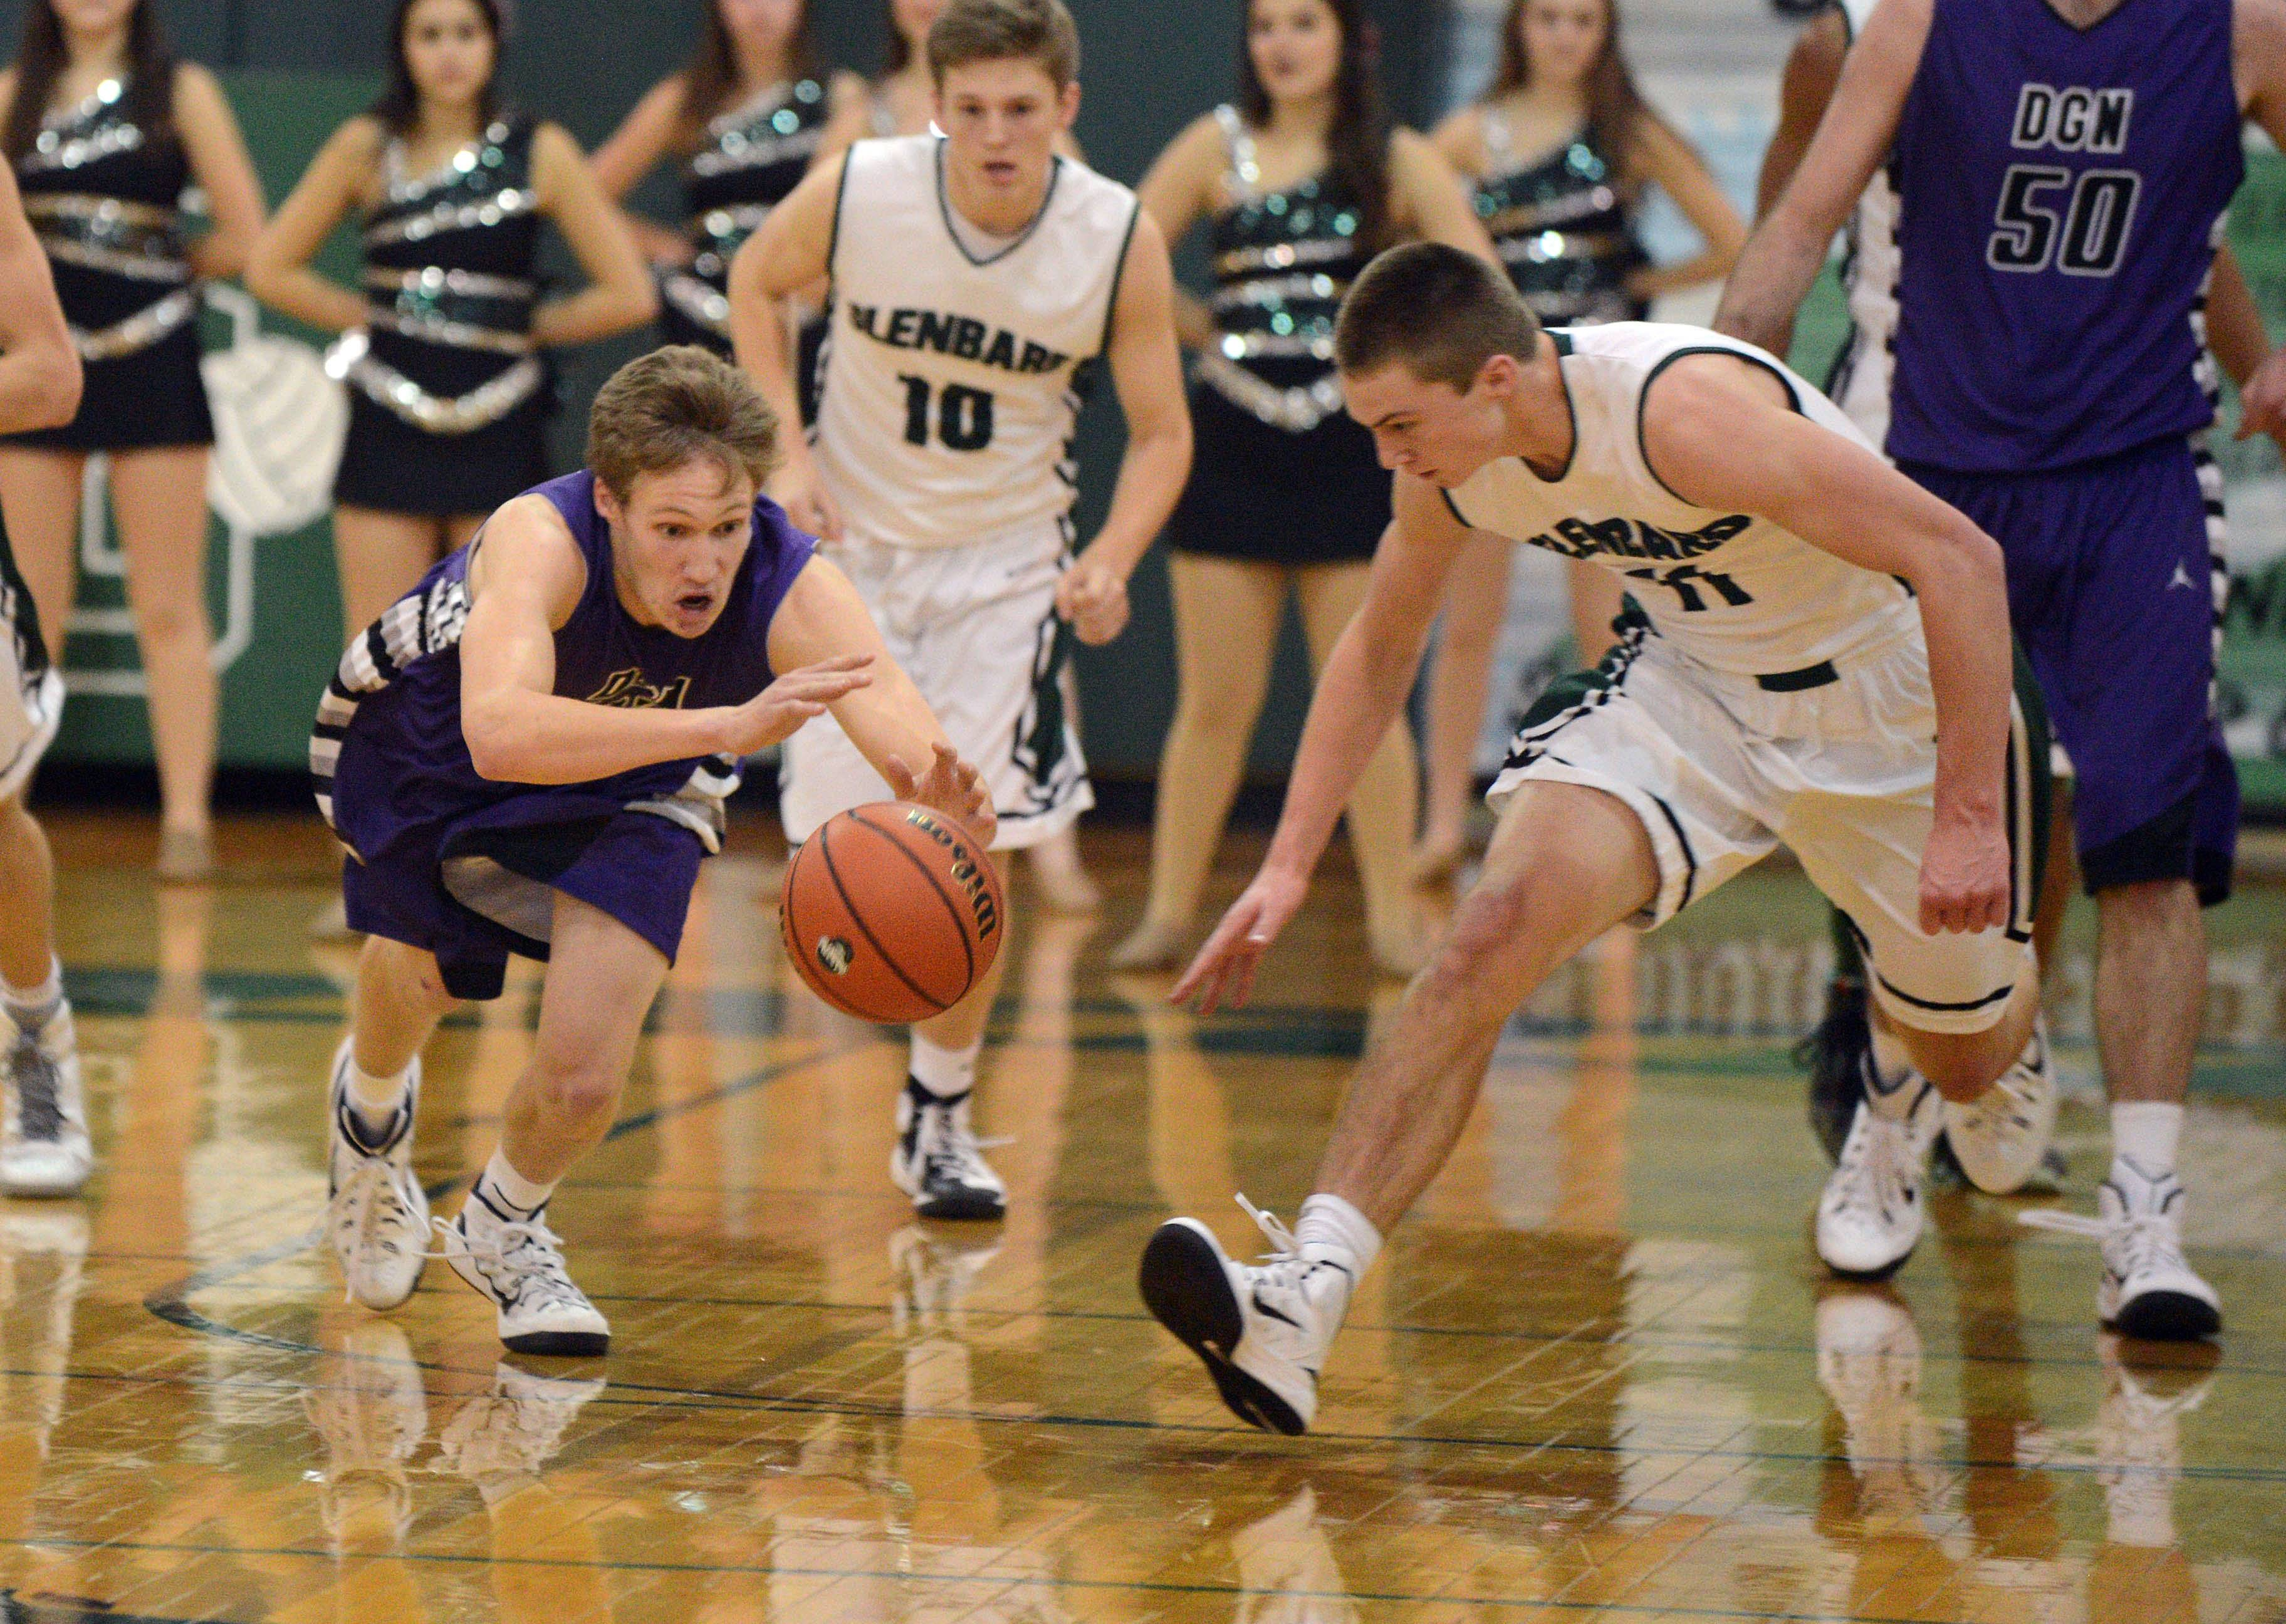 Marks Bowen of Downers Grove North,left, and Aidan Gould of Glenbard West dive for the ball.